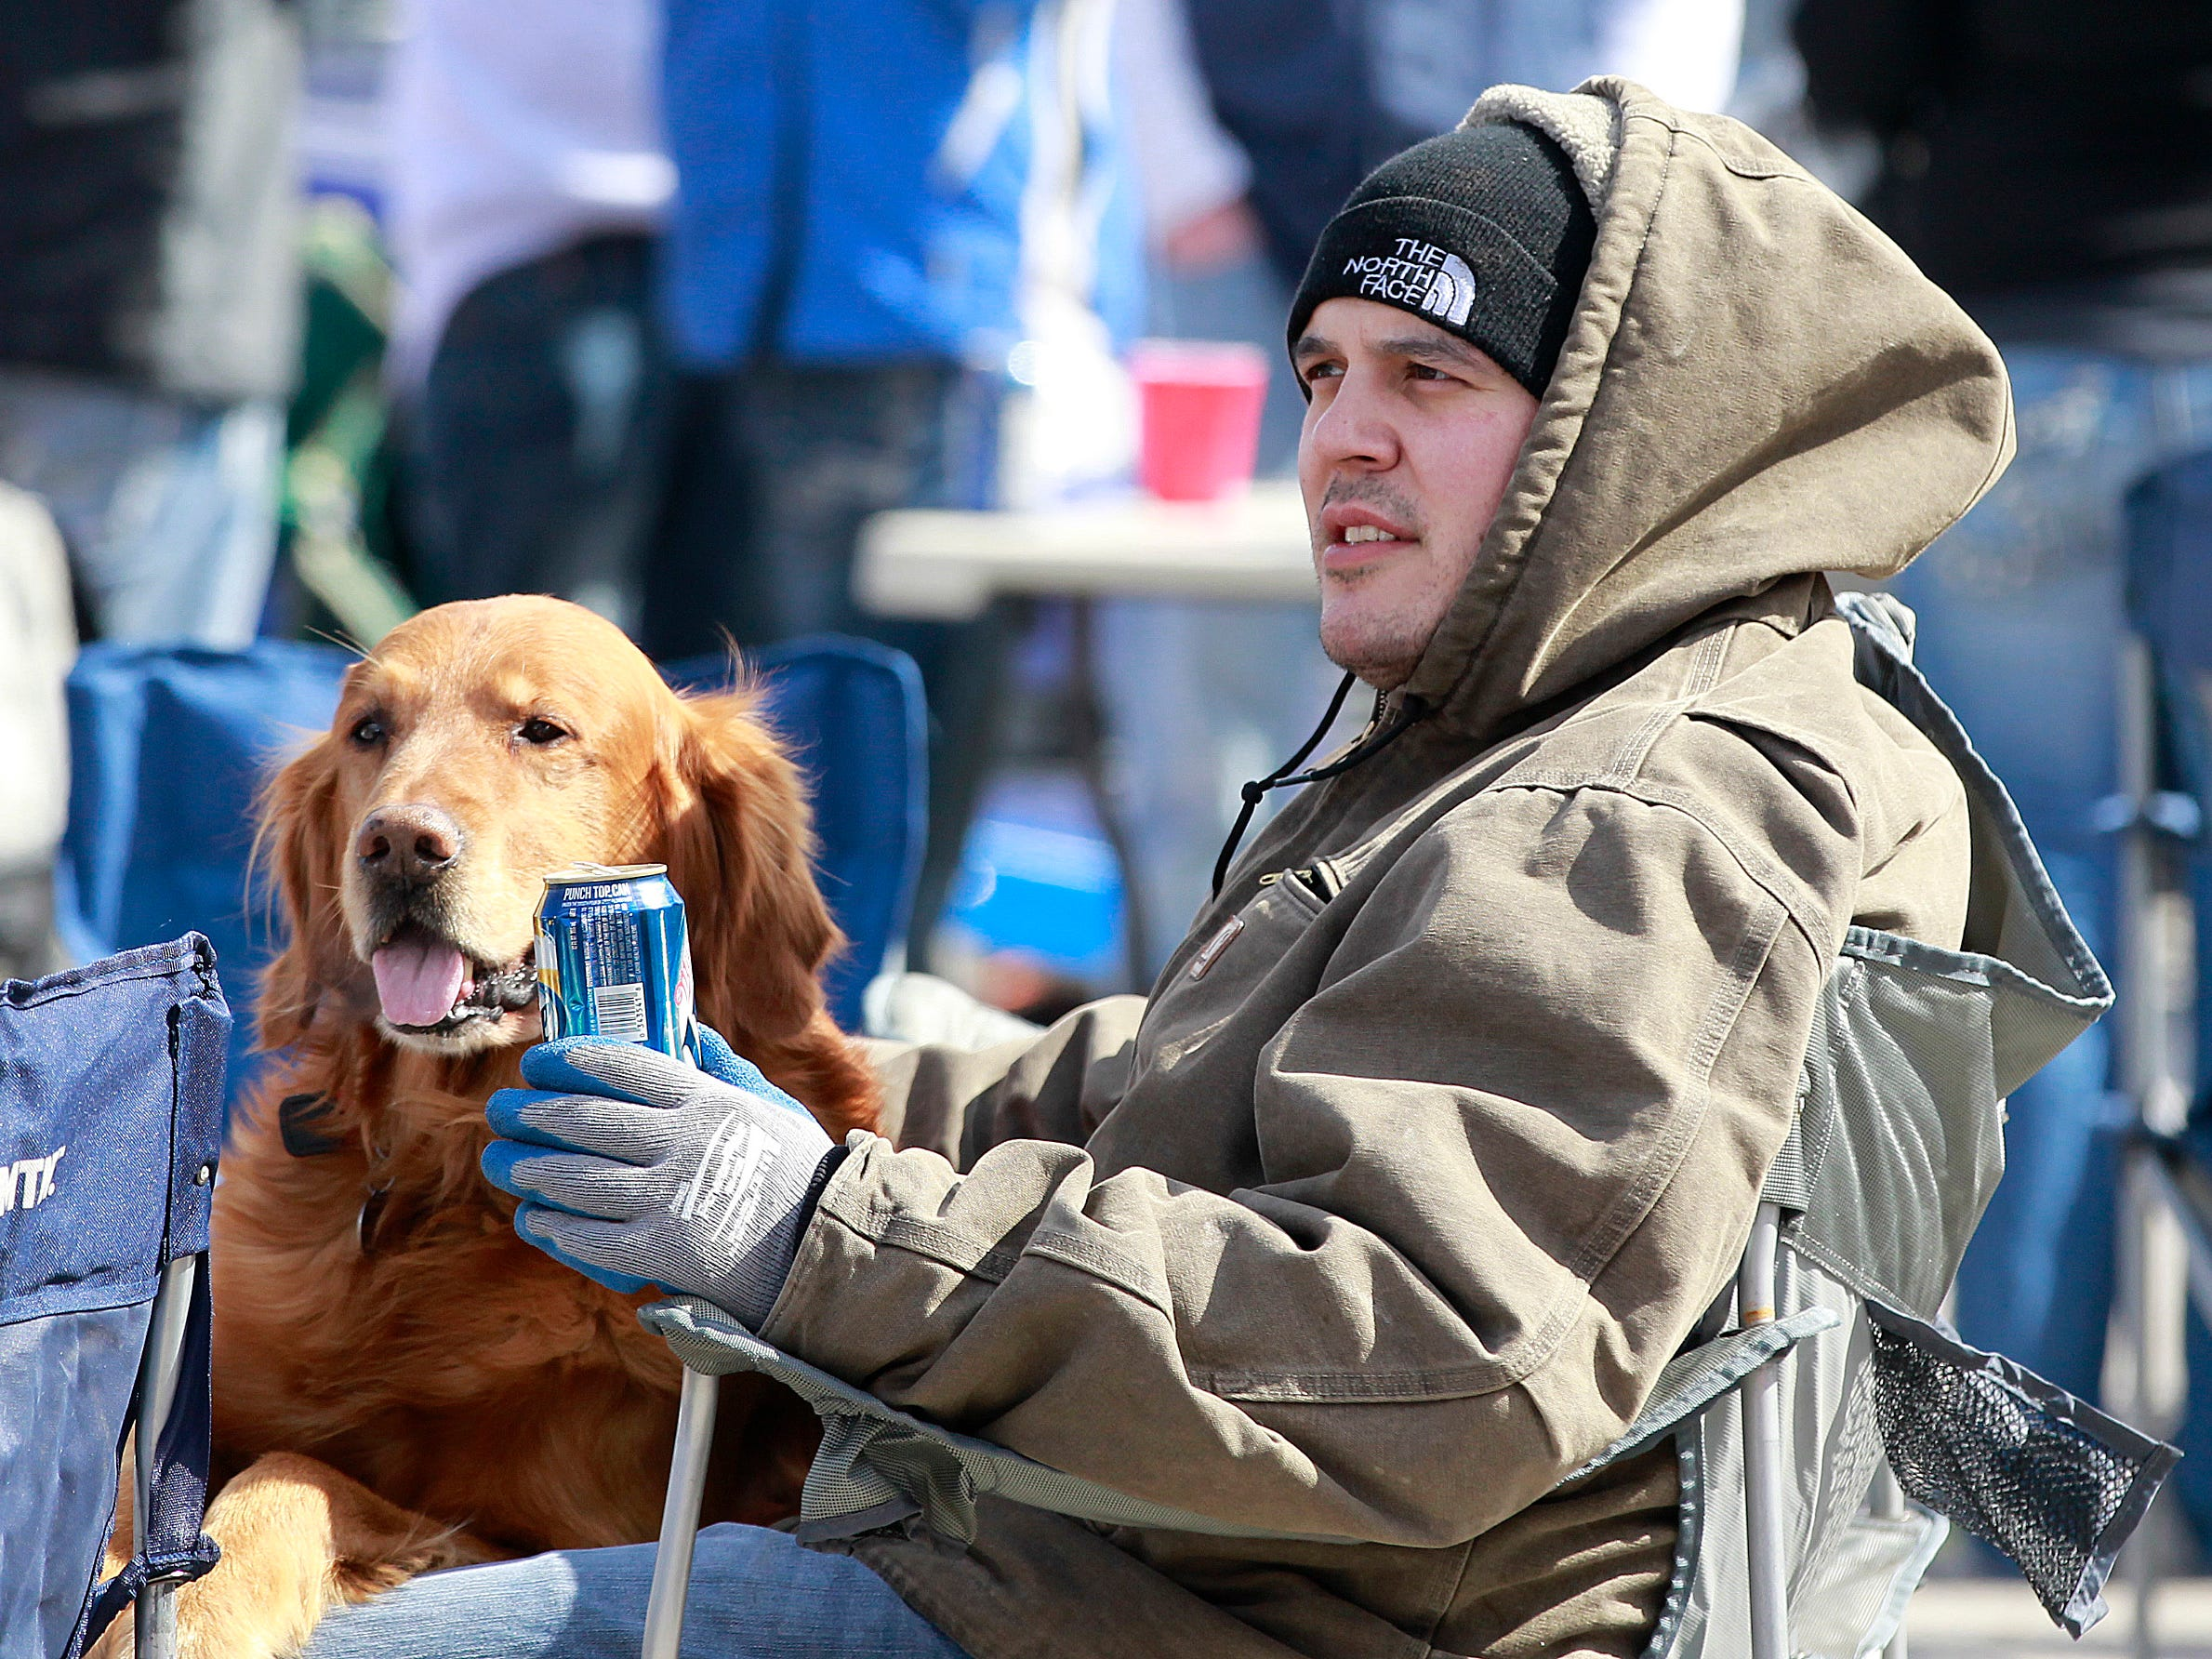 Joshua Vianes bonds with Chance, a friend's dog, while tailgating in the parking lot at Miller Park on opening day, on April 1, 2013. Inside the stadium, the Milwaukee Brewers beat the Colorado Rockies, 5-4.